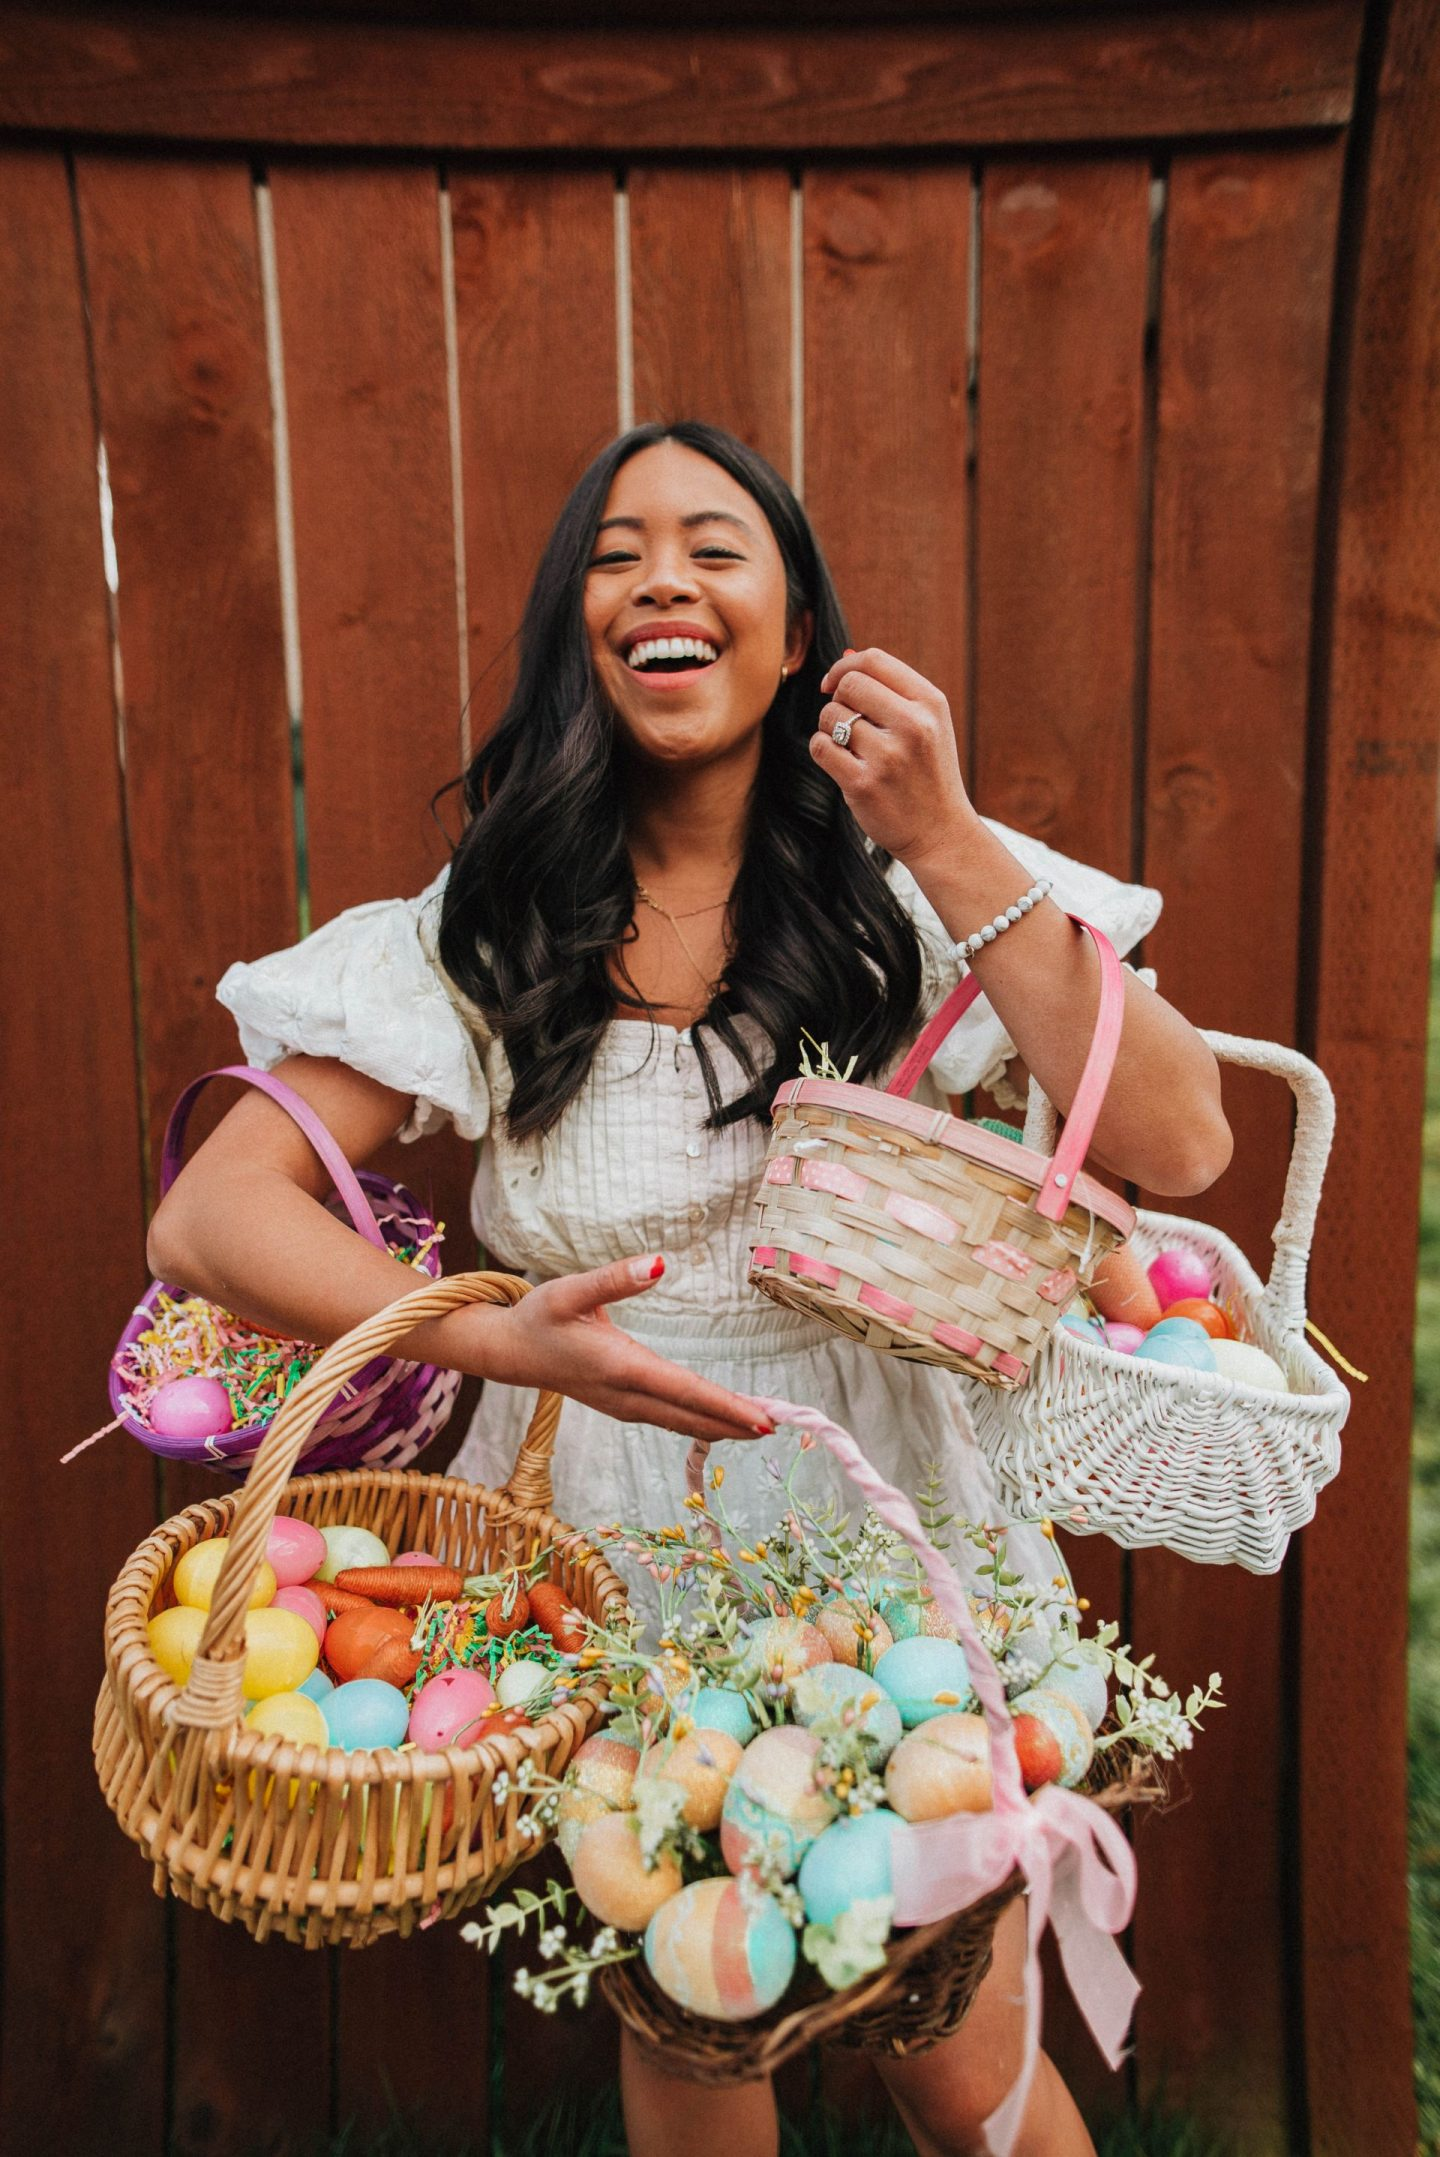 Easter 2021  - Easter baskets - Easter egg hunt - Easter photo shoot ideas - Easter dresses - Easter outfits - image from www.emmasedition - copyright @emmasedition